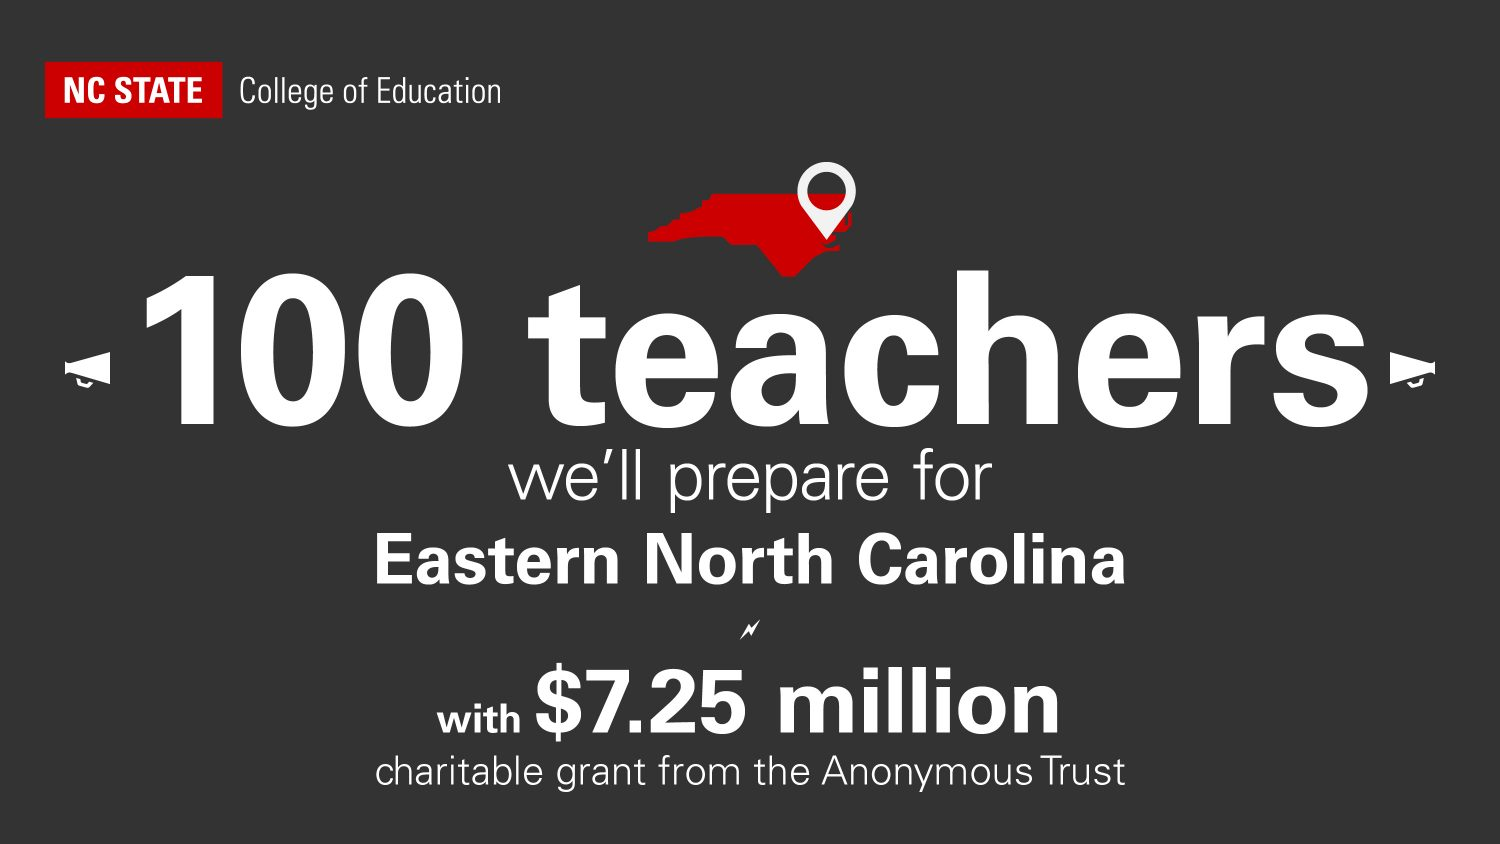 NC State will prepare 100 teachers for Eastern North Carolina with a grant from the Anonymous Trust